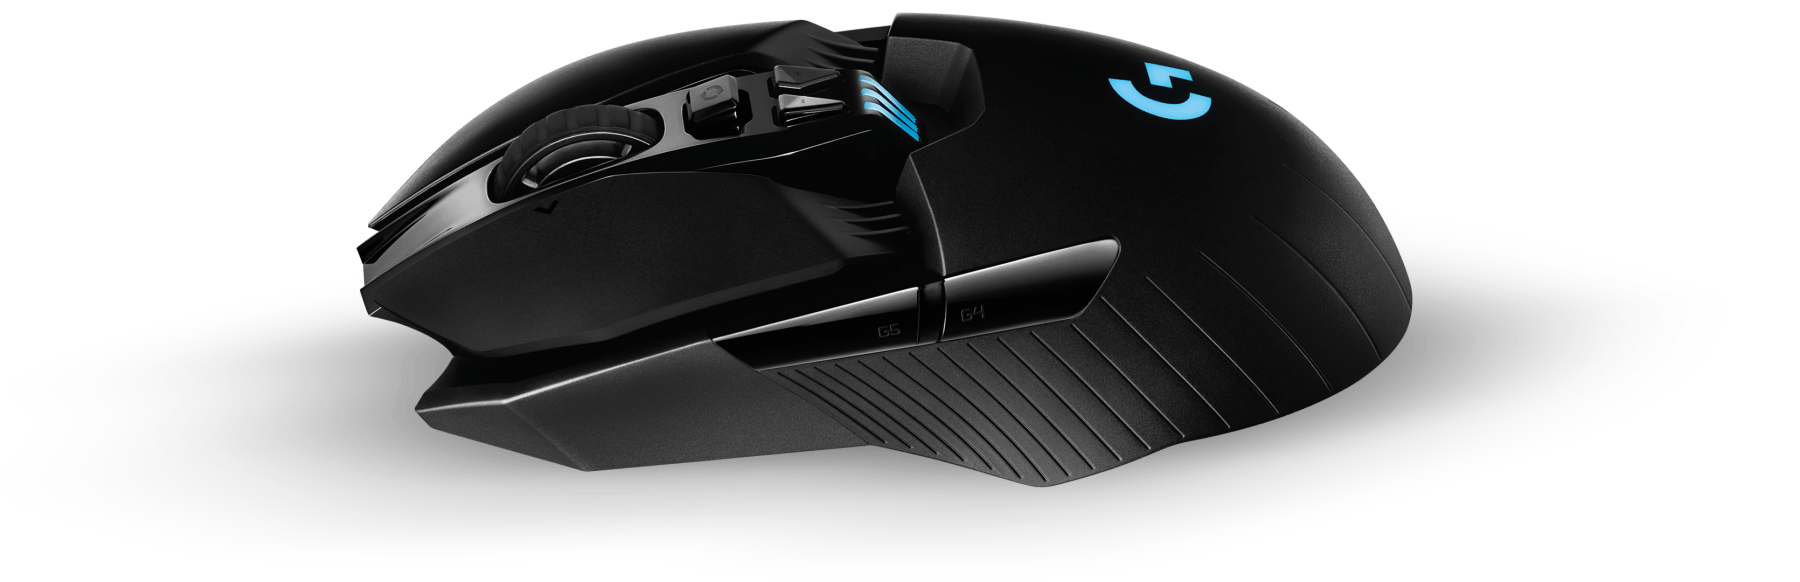 Logitech G903 LightSpeed Wireless Gaming Mouse Side View